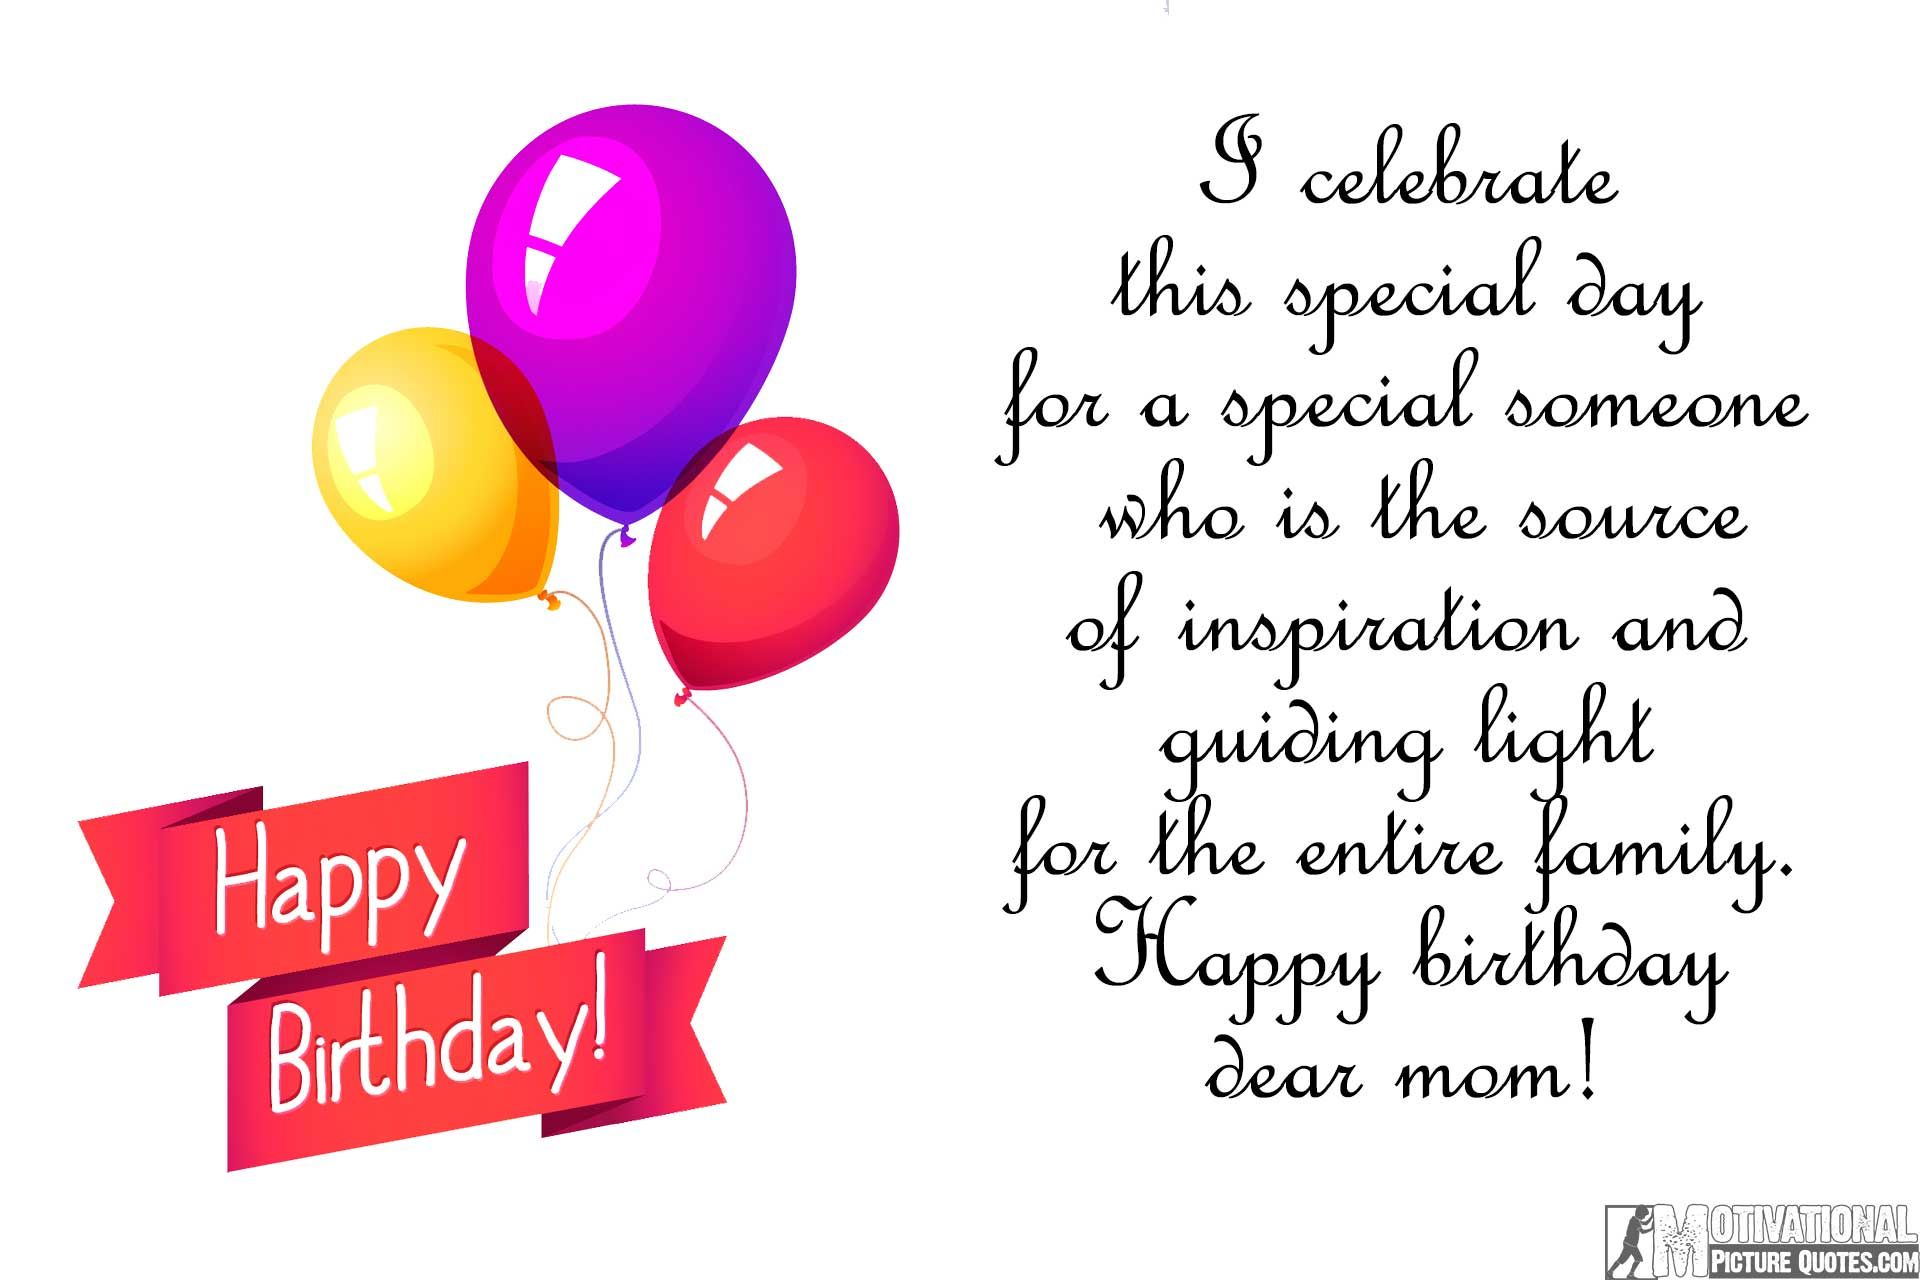 Inspirational Birthday Quotes Images With Cute Wishing Messages